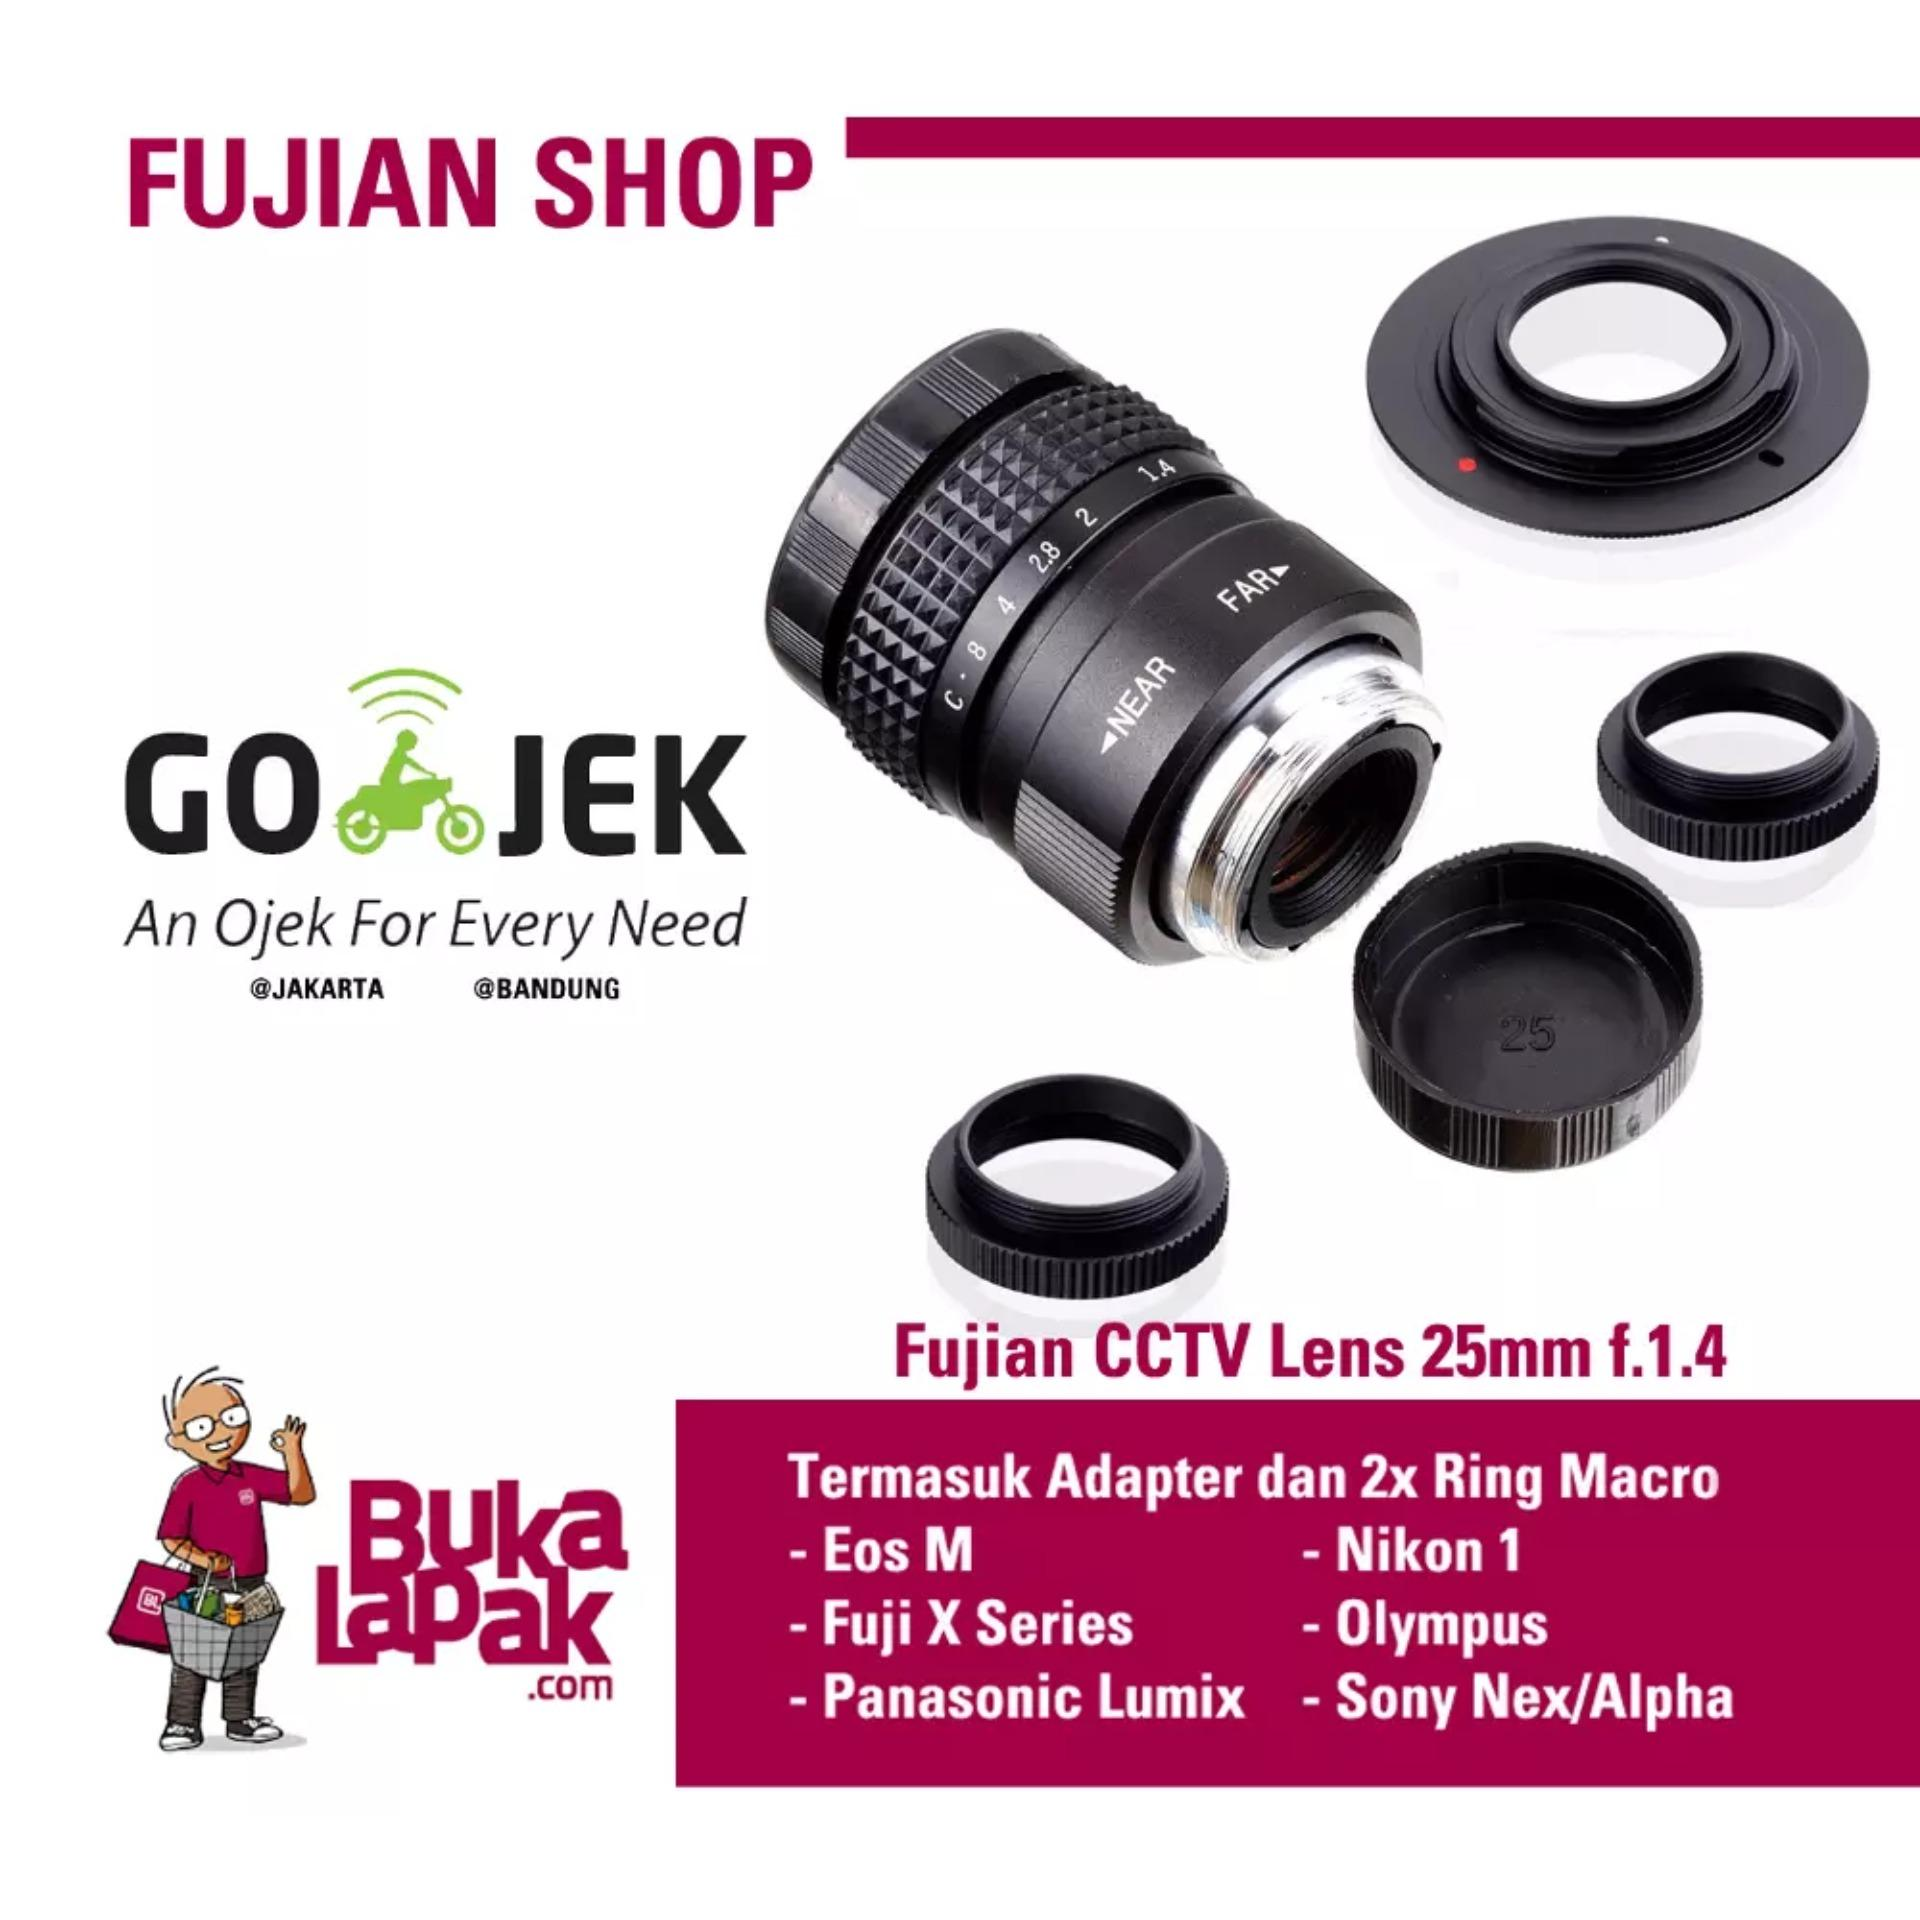 Lensa Manual Mirrorless Fujian 25mm F14 Cctv Lens Swirly Bokehbuat Meike 35mm F17 For Sony A5000 A5100 A6000 A6300 A6500 Fix Bokeh